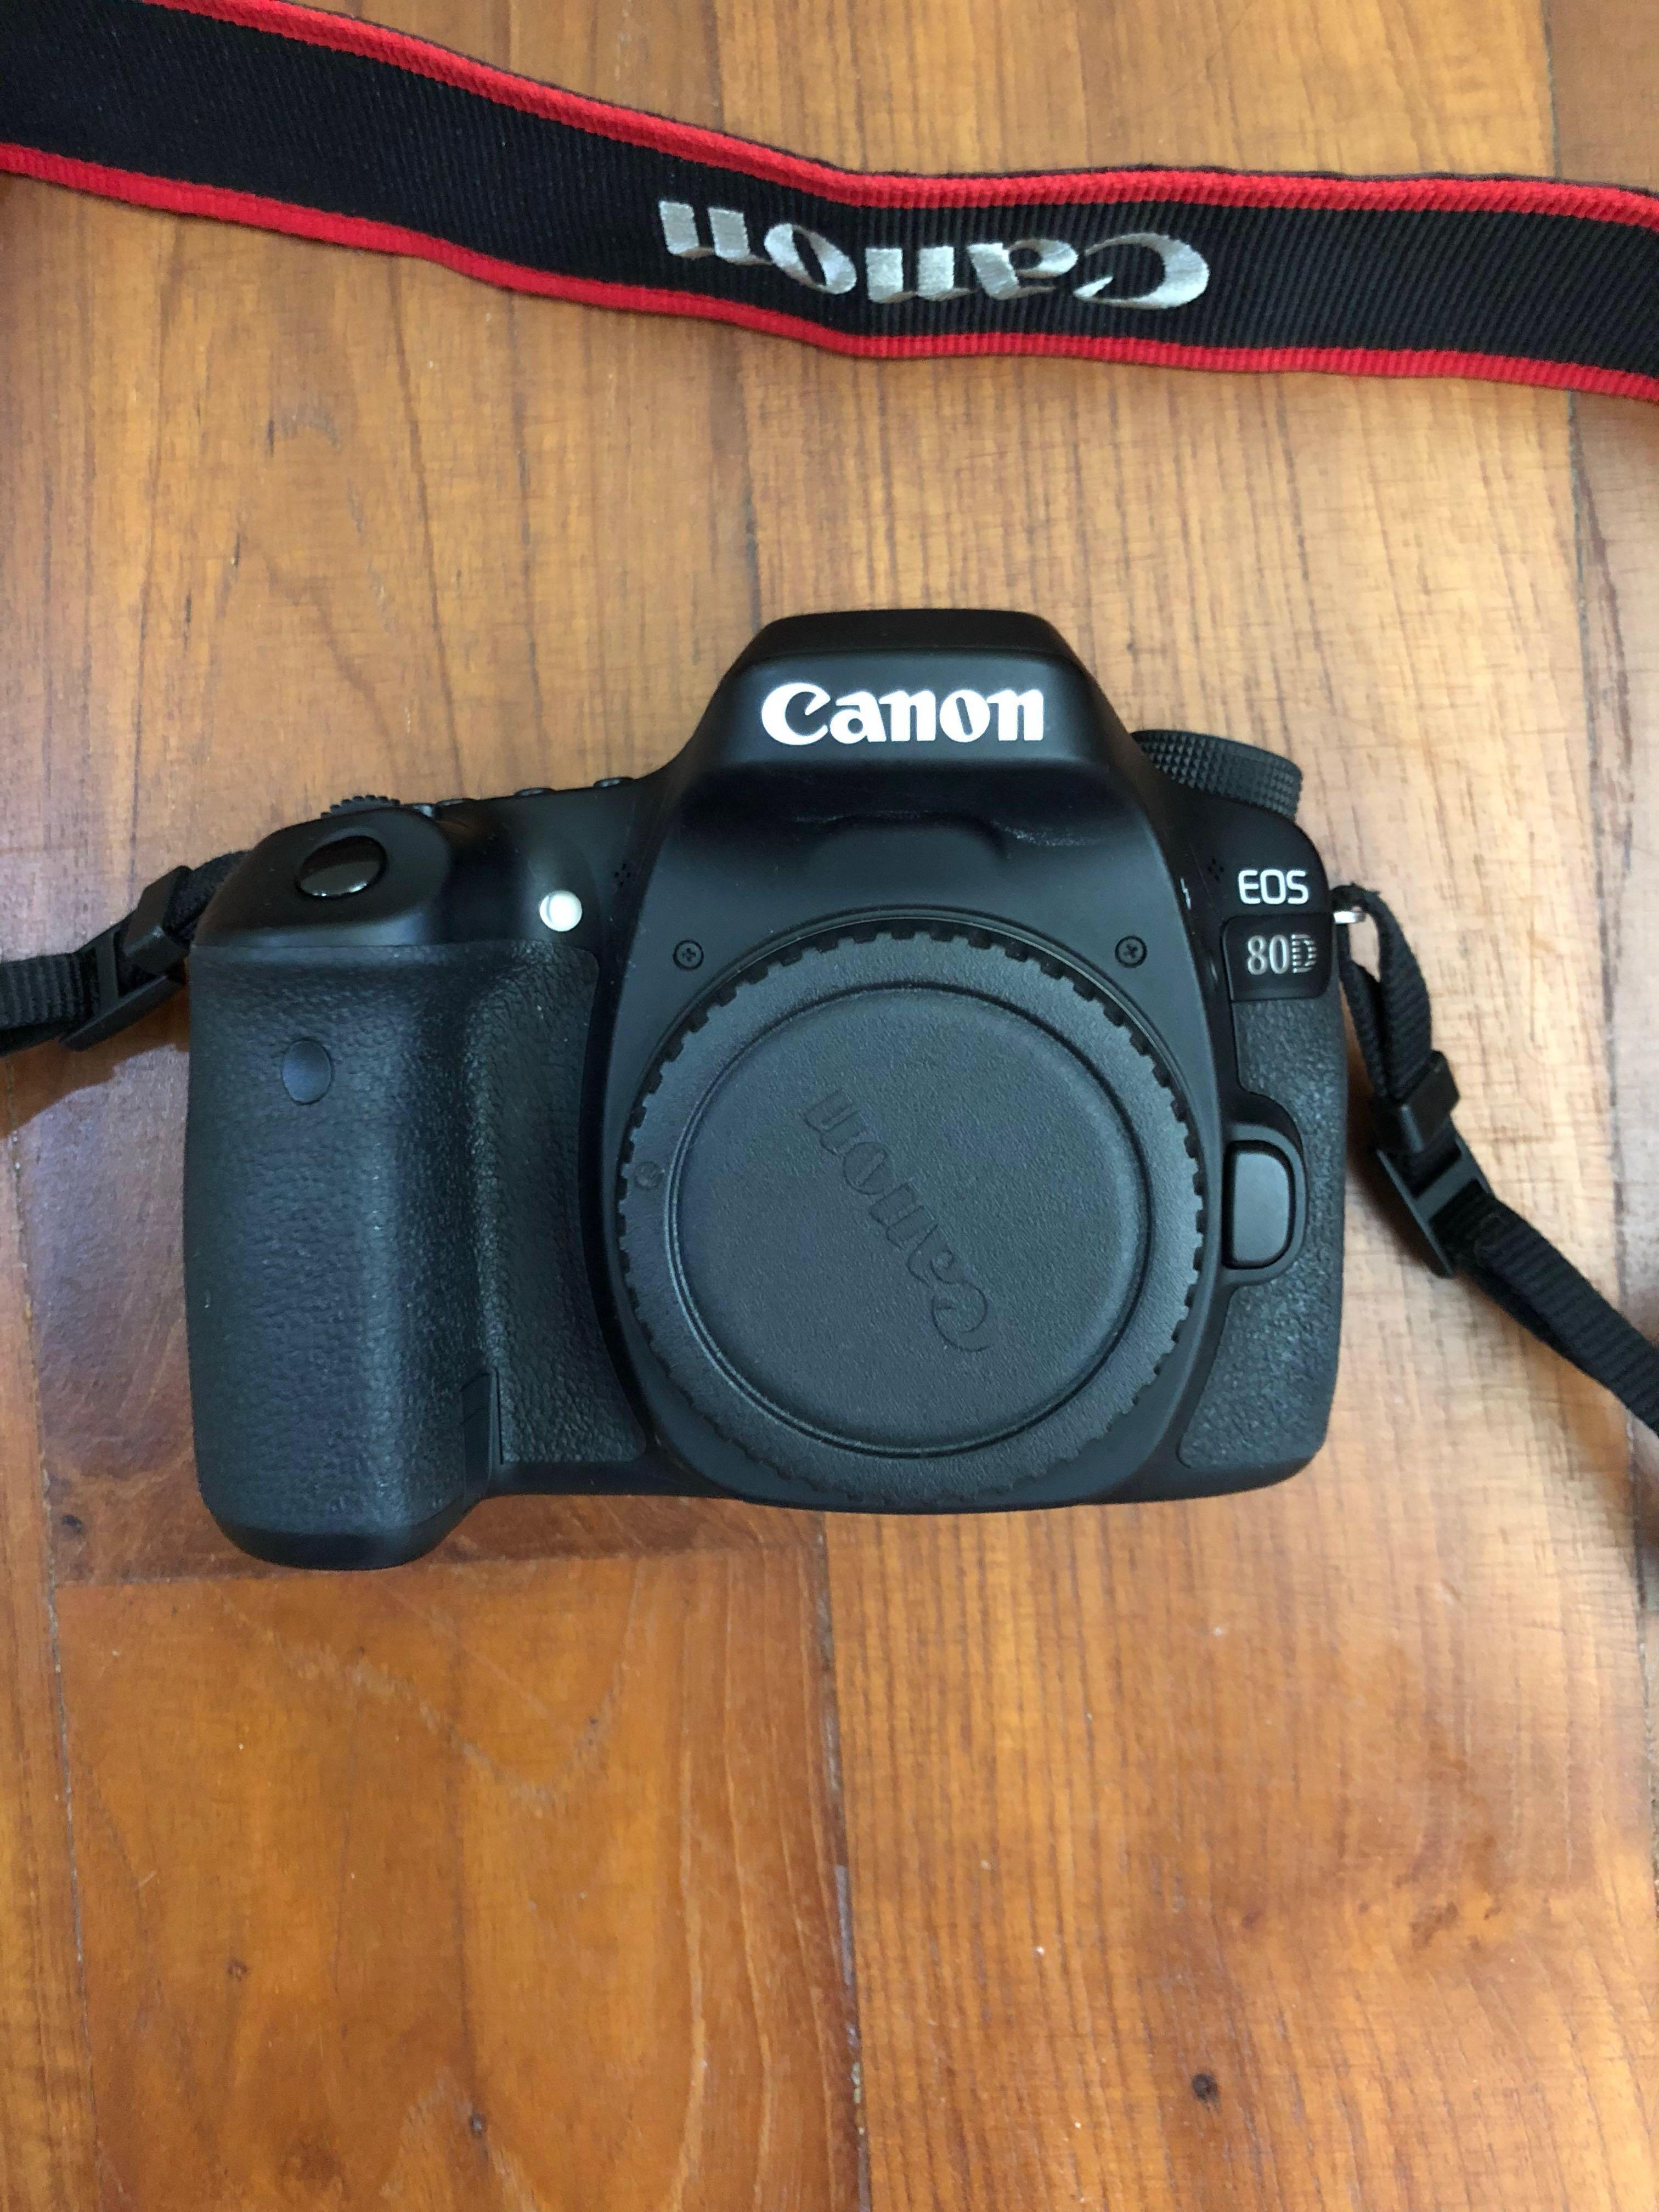 Canon 80D with 18-55mm kit lens , Photography, Cameras, DSLR